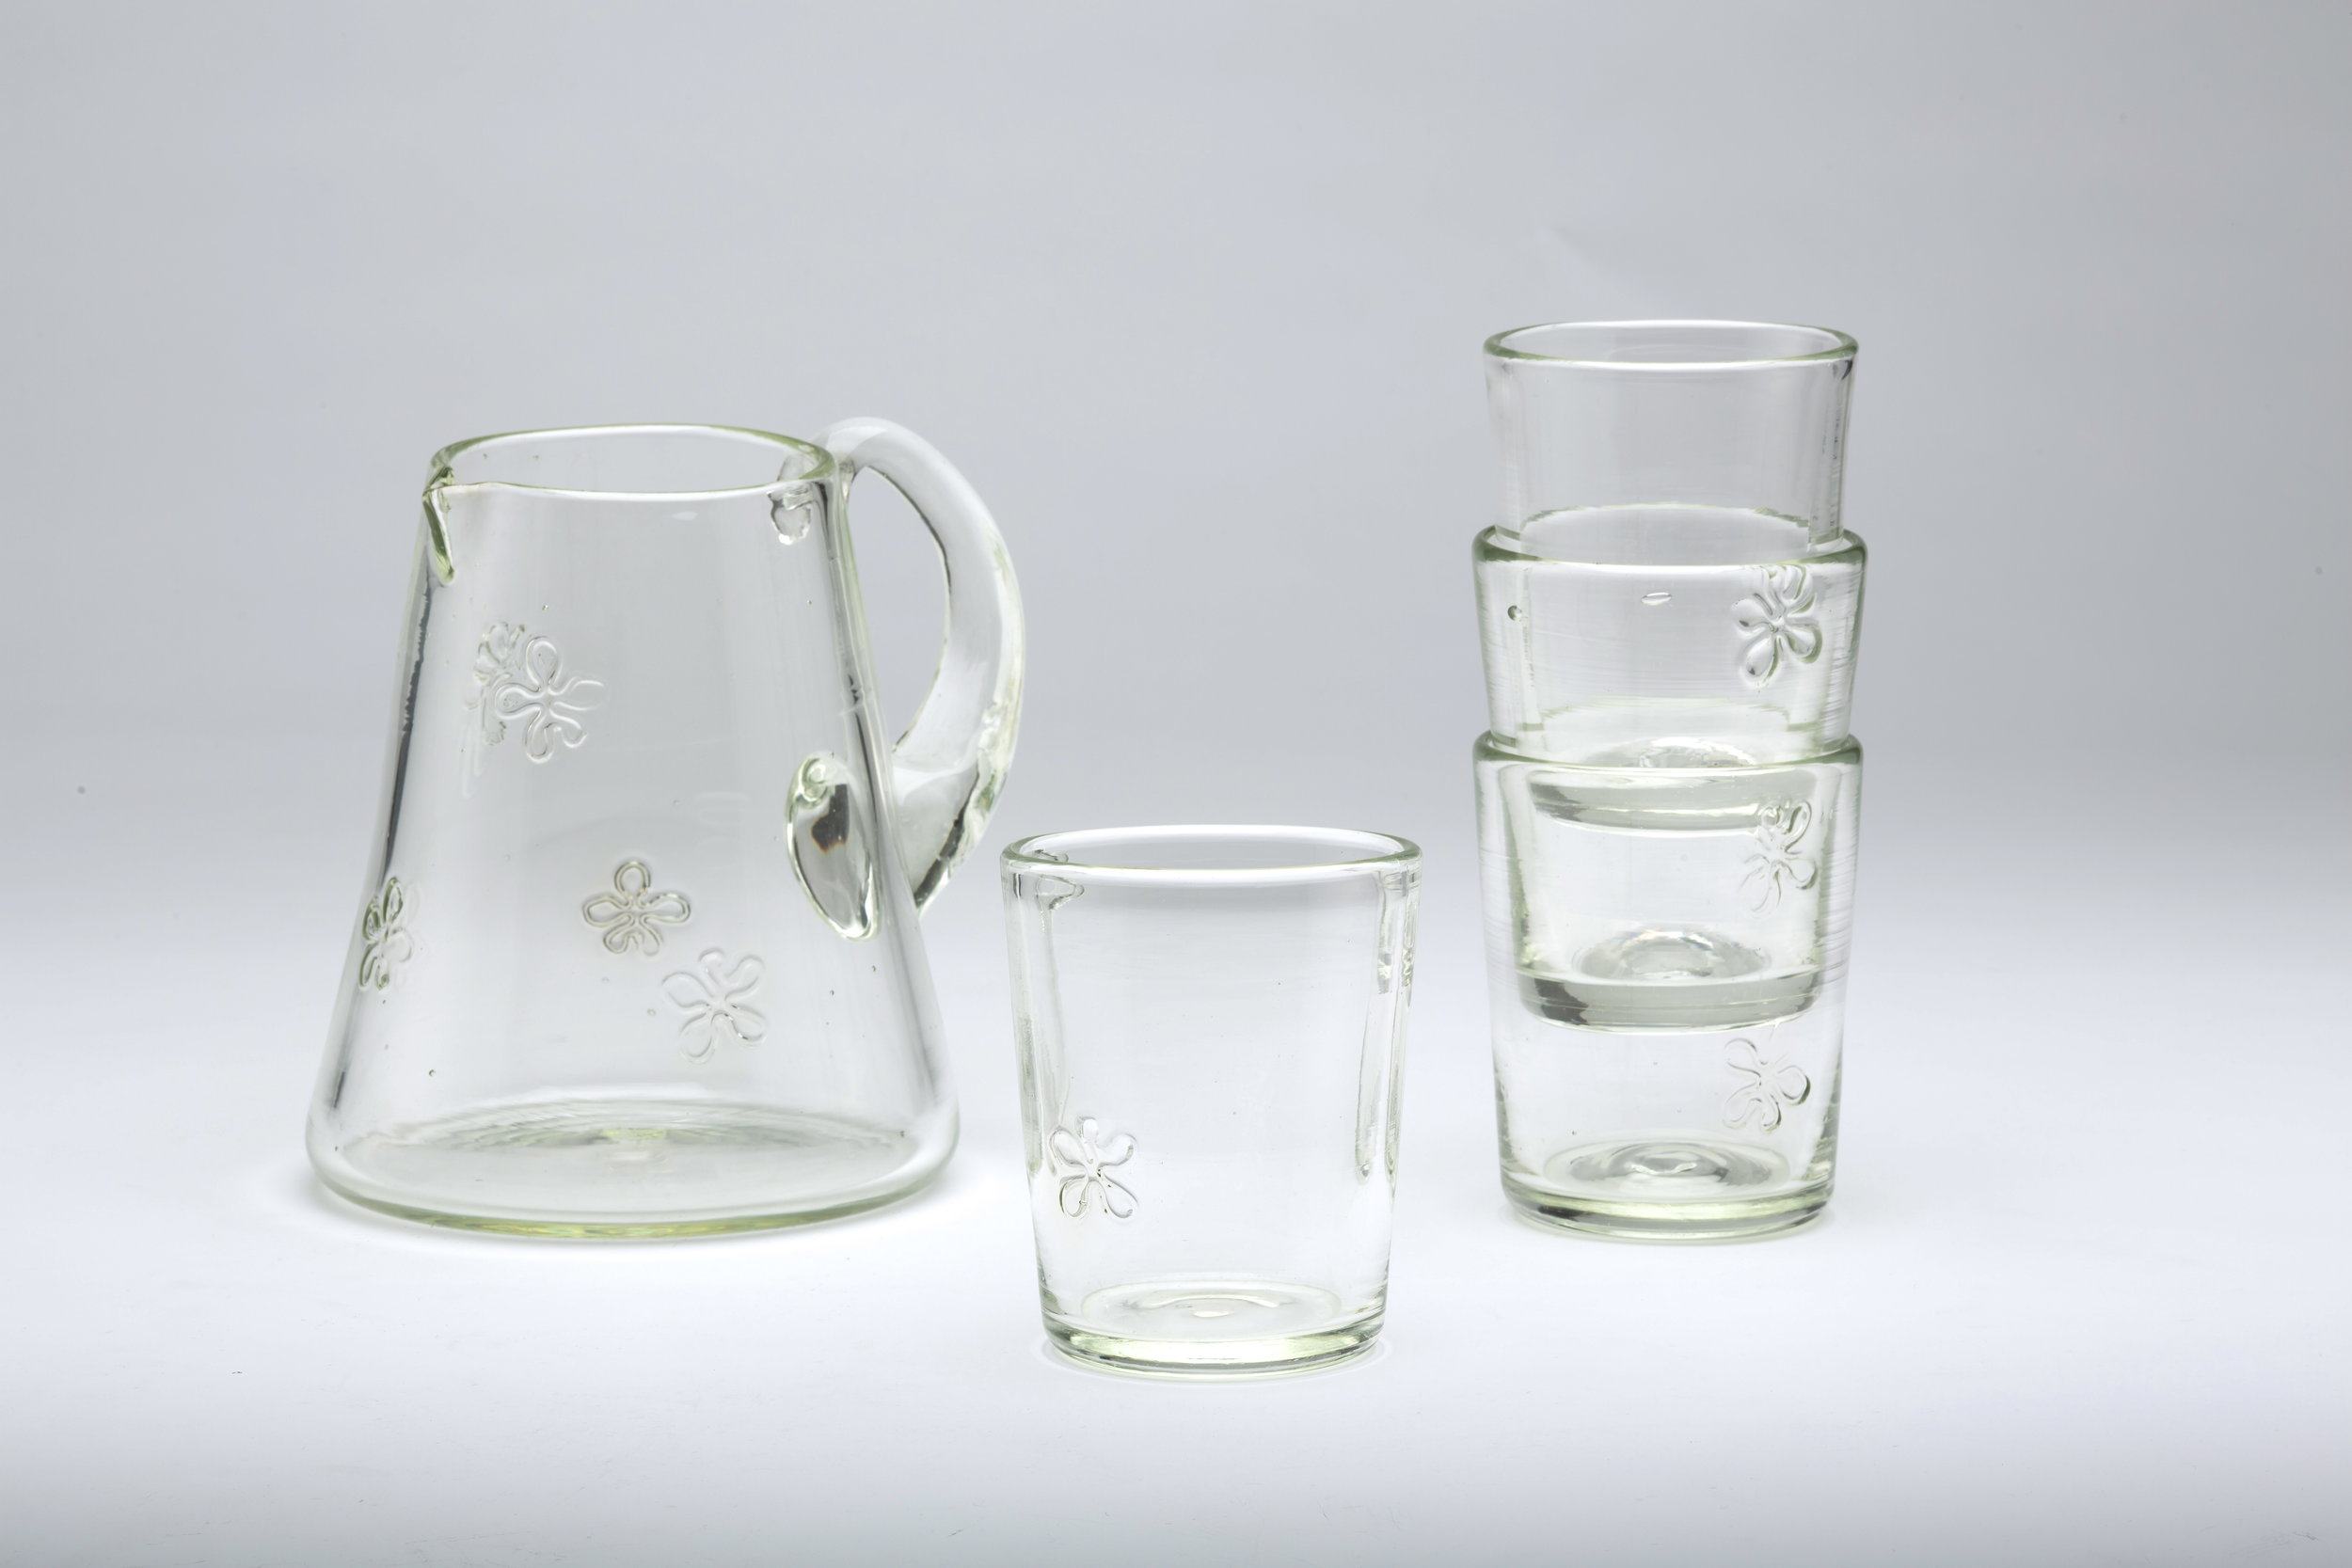 Flower Jug and Cups Set, 2012